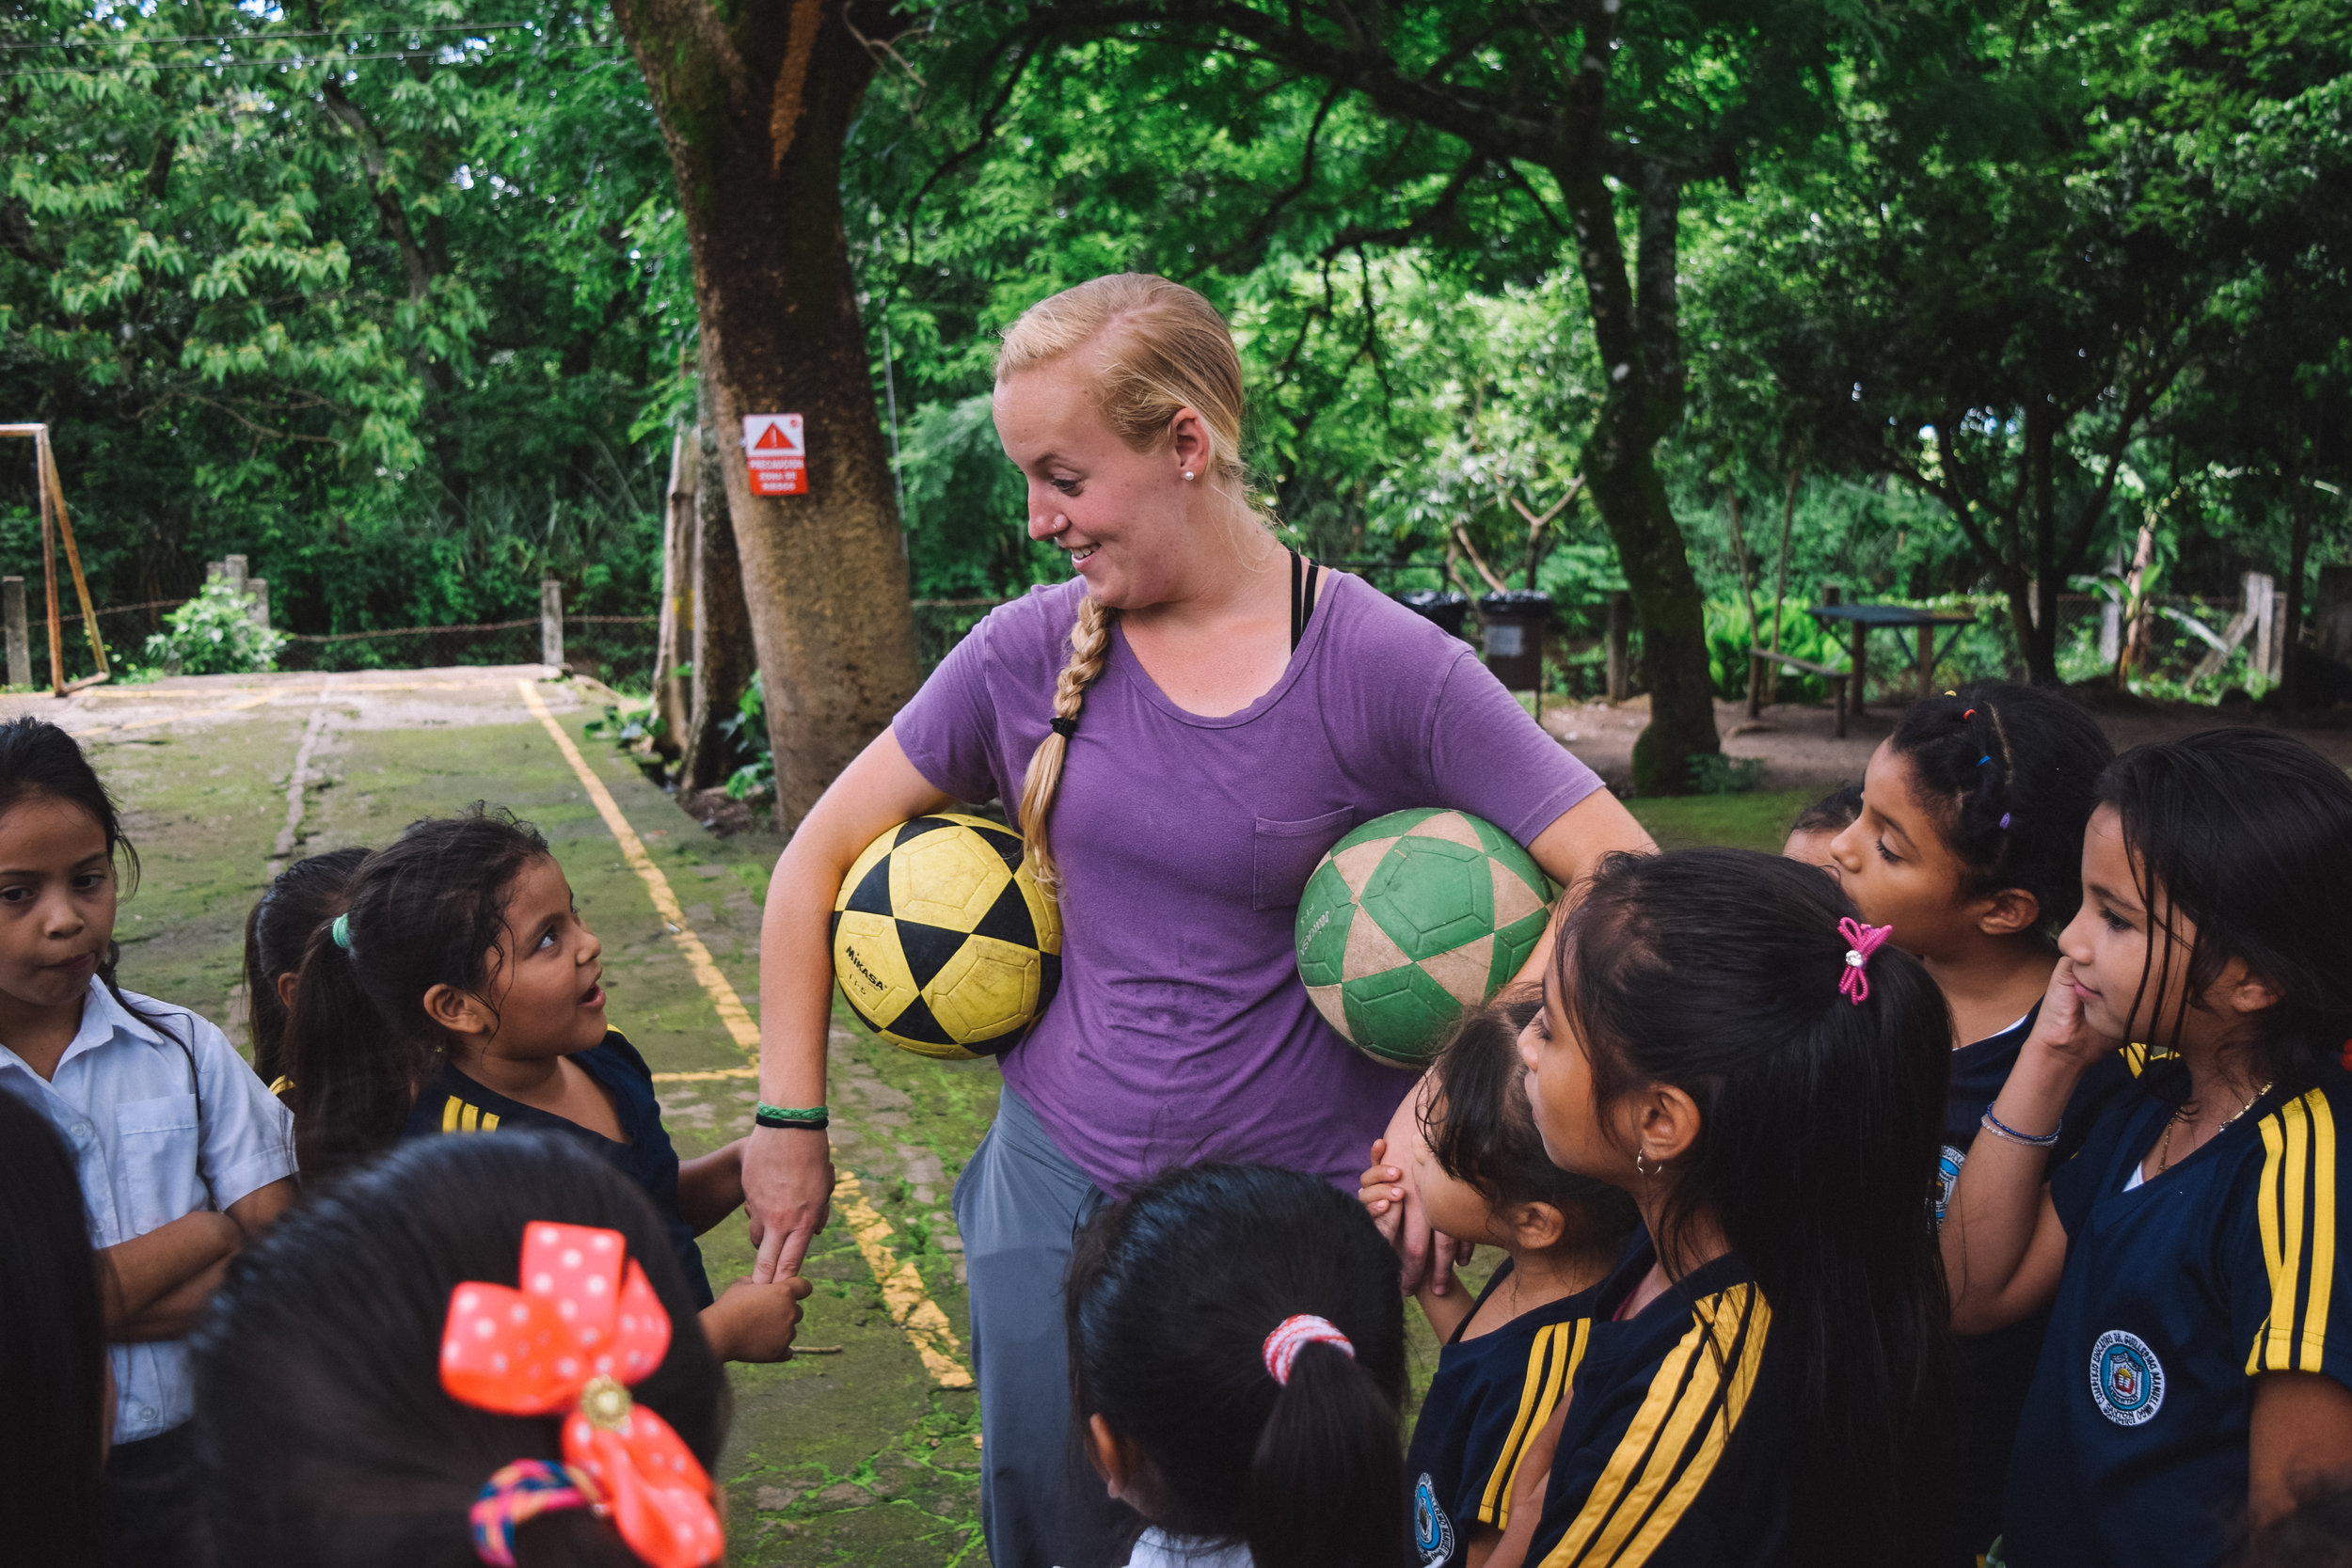 Anna Hastings' immersion project was to host the second season of a soccer league on our campus in rural El Salvador.